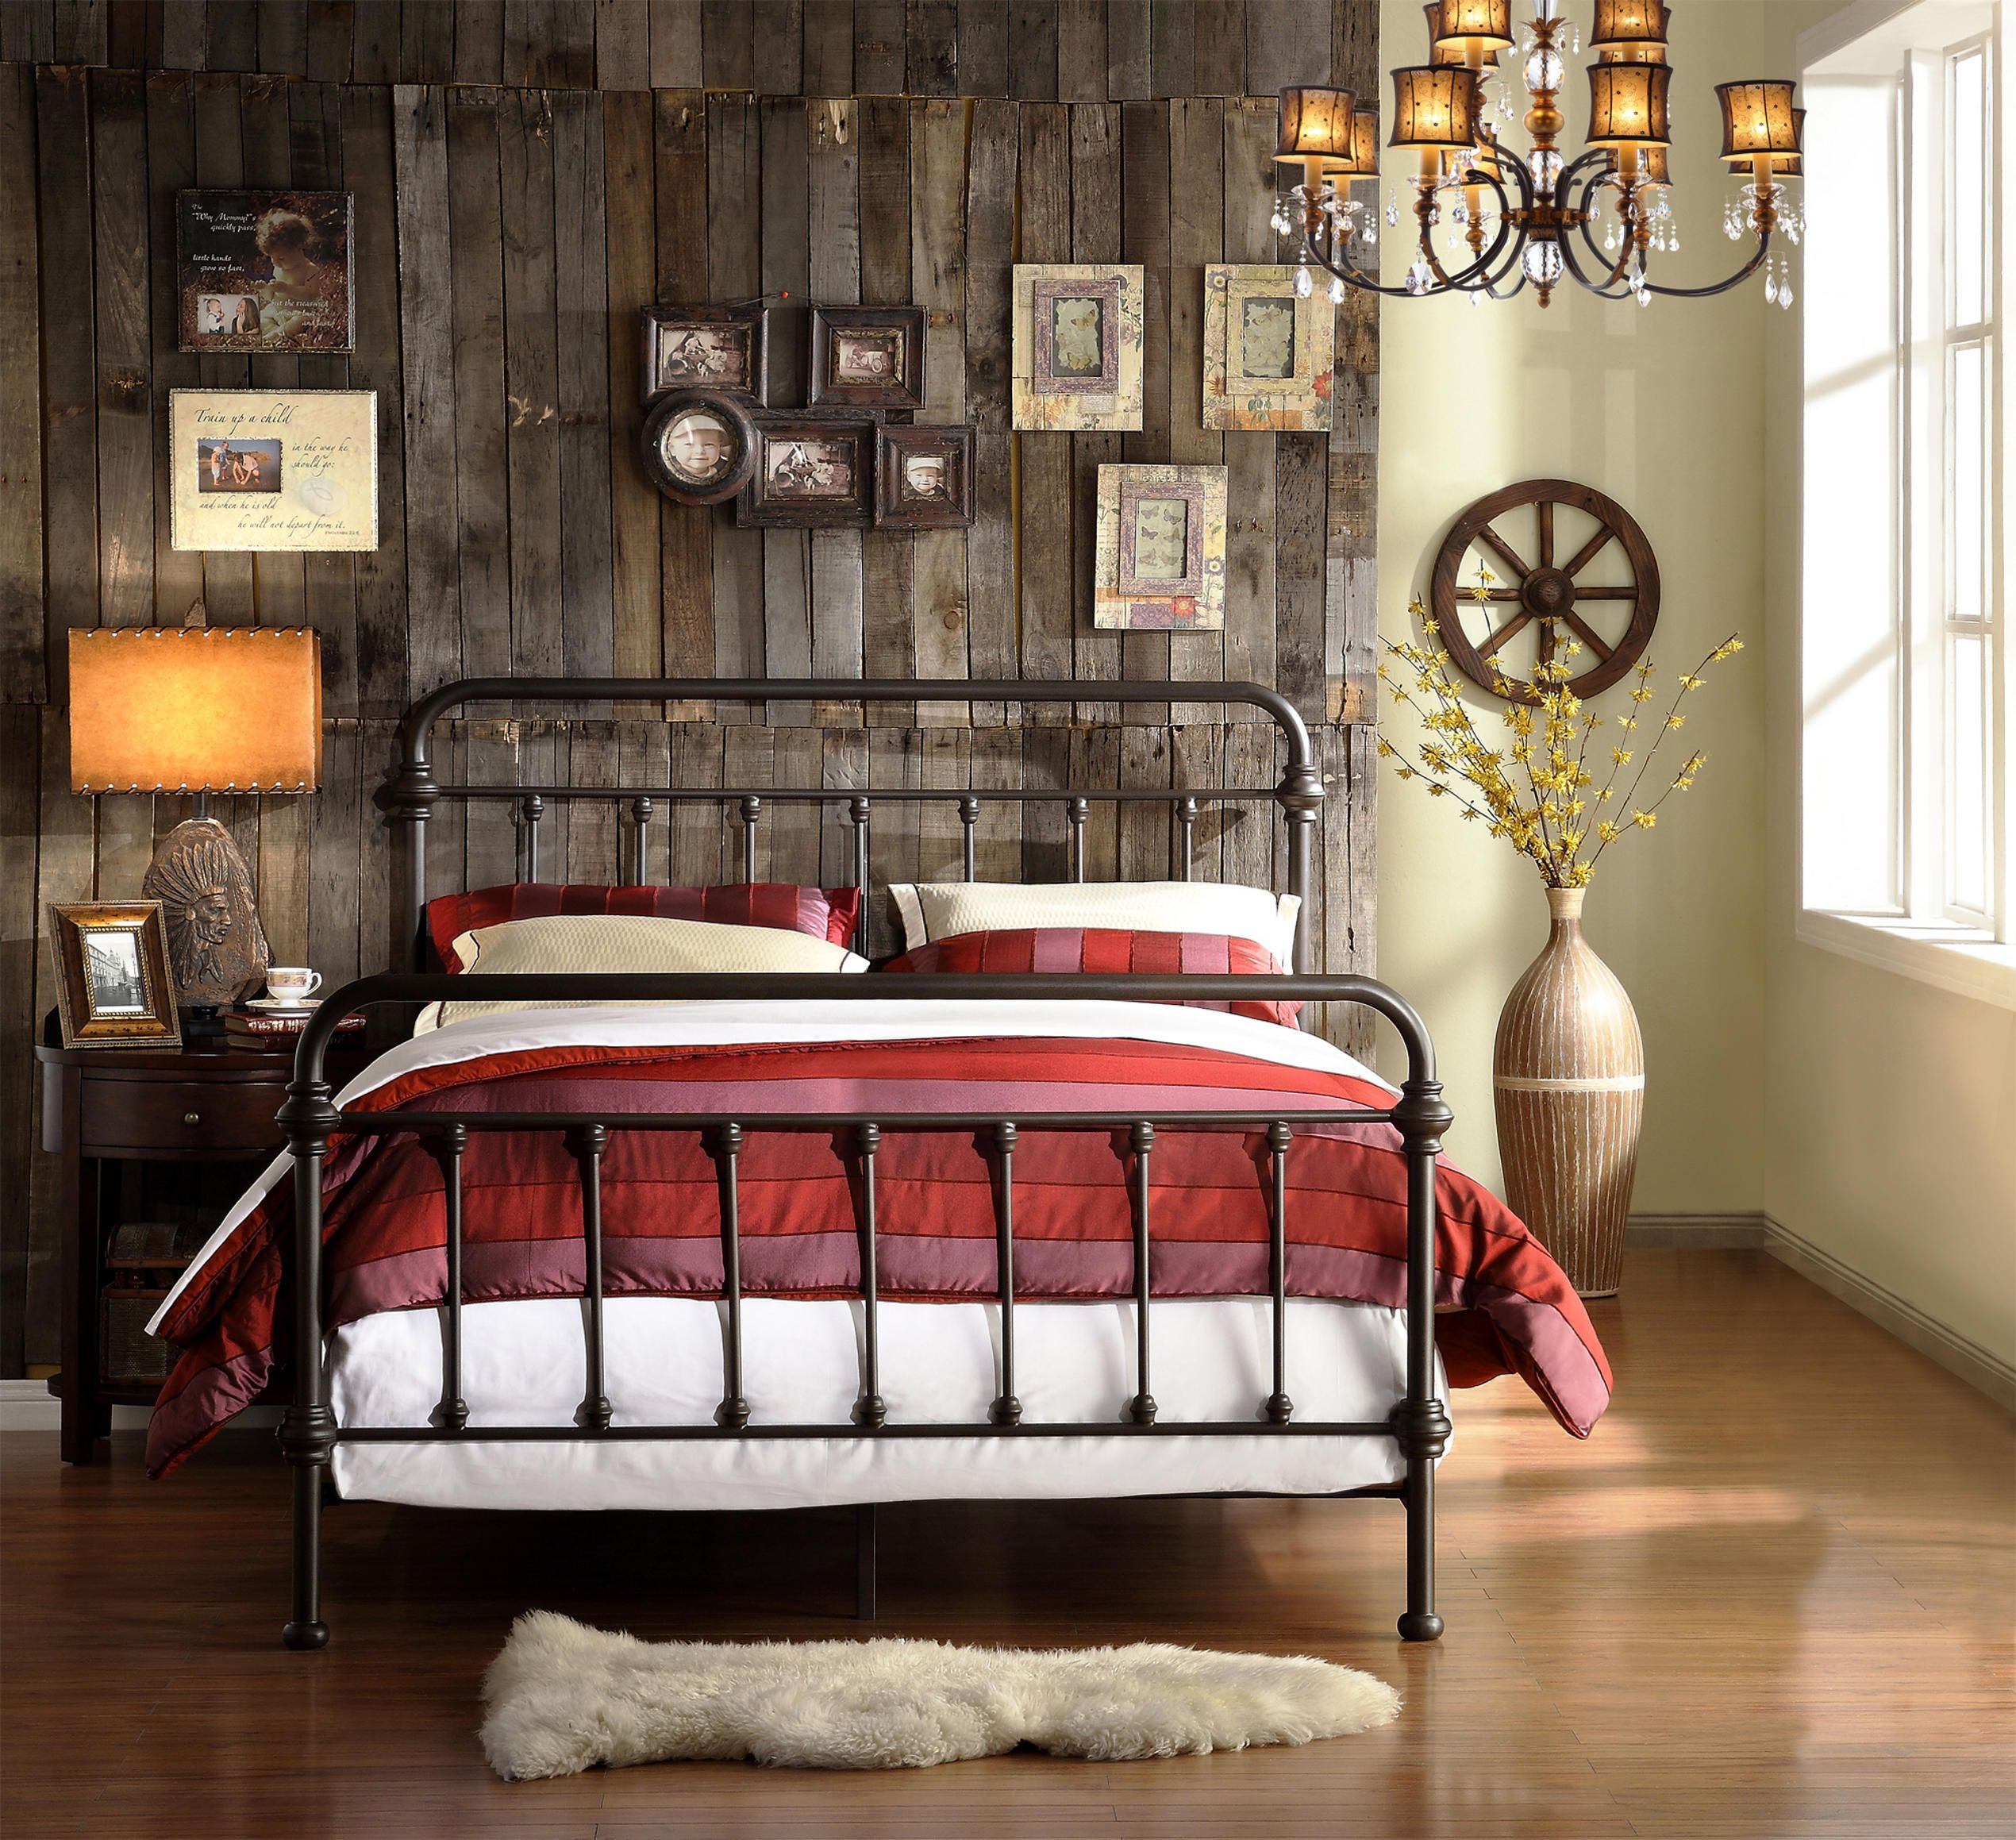 wood twin headboard frames diy inspirations with frame decor imposing gallery ideas beds simple you trends cheap queen between curtains headboards bed unique images design bedroom for of picture organization